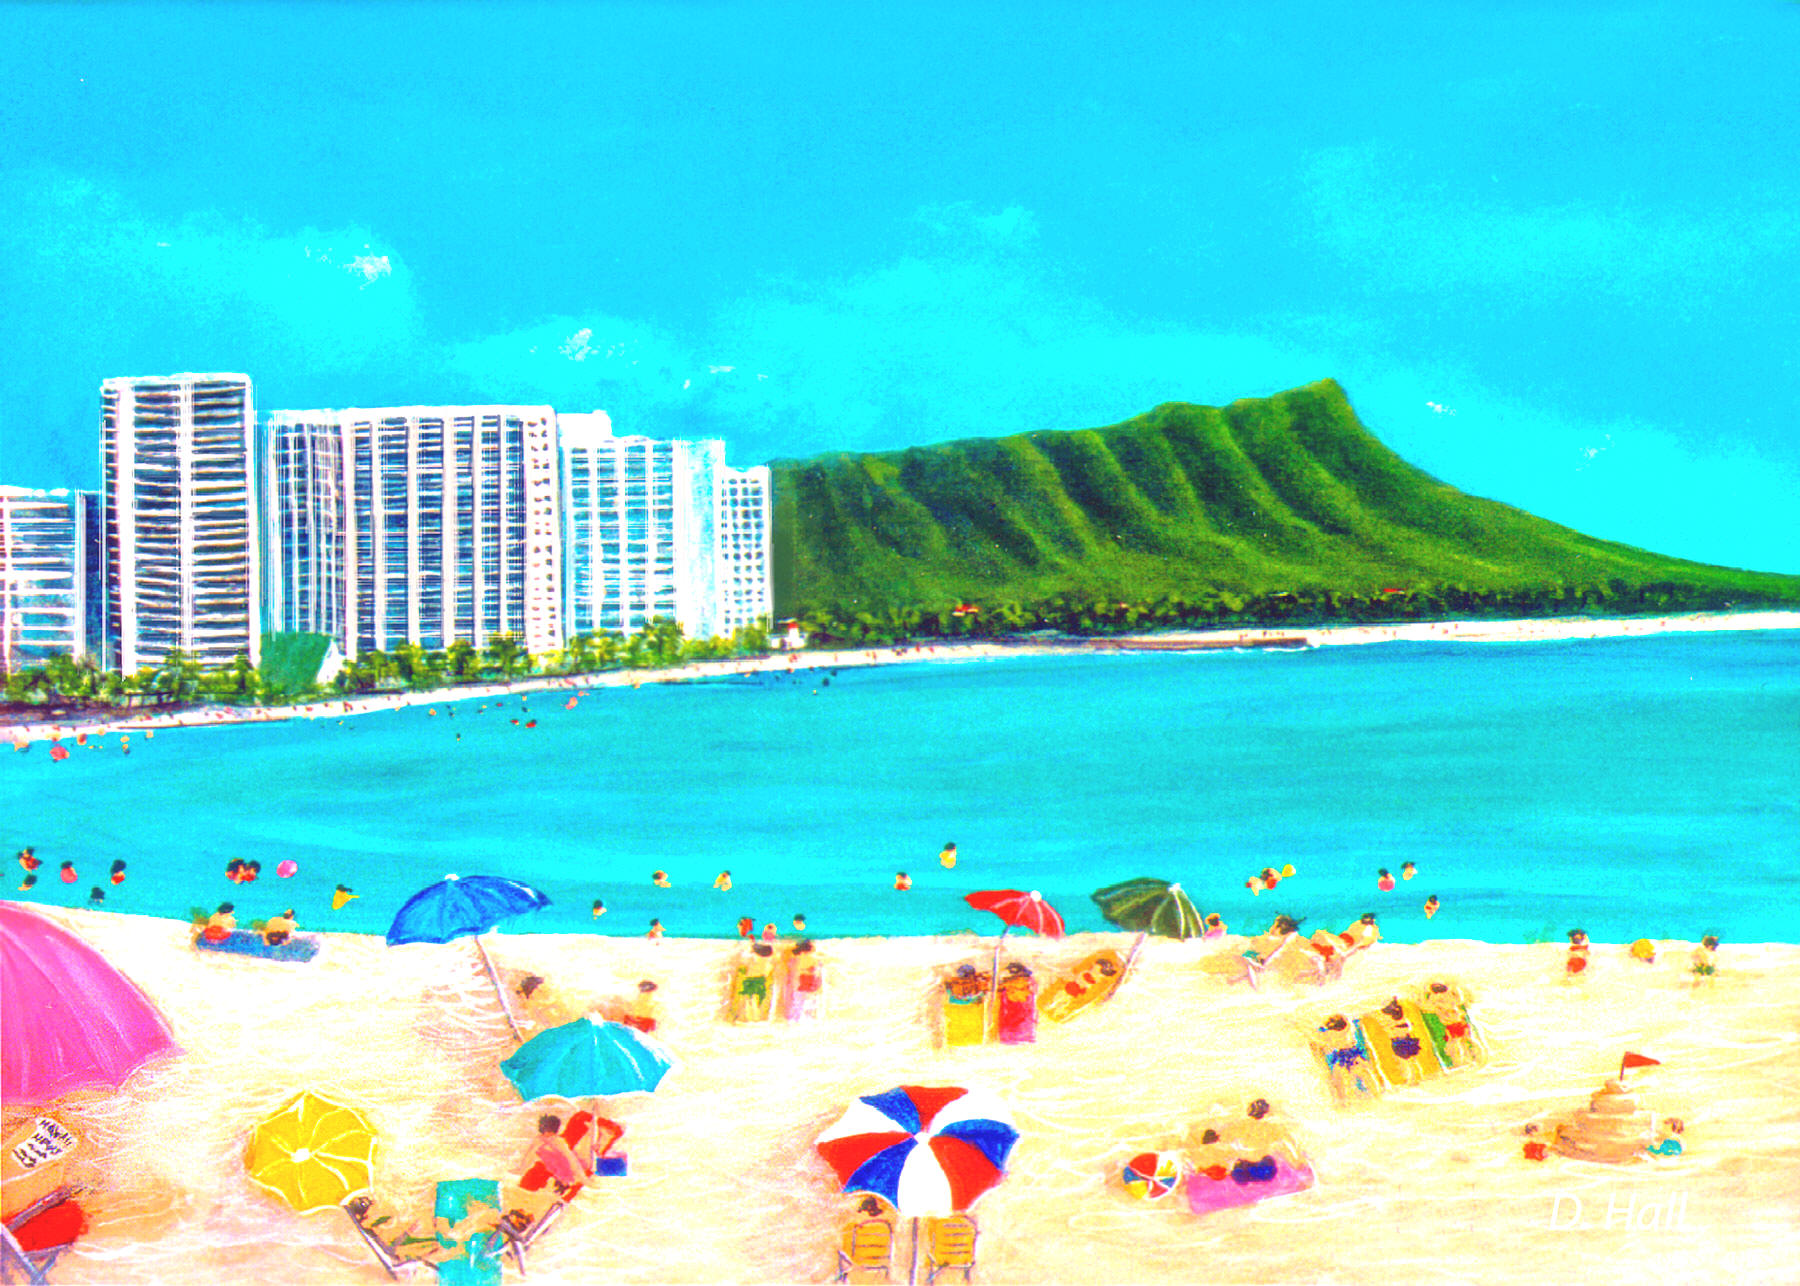 Hawaii Beach  art, Hawaiian Art Prints, landscape a day at Waikiki Beach, Diamond Head painting by Hawaii artist Donald K. Hall #285